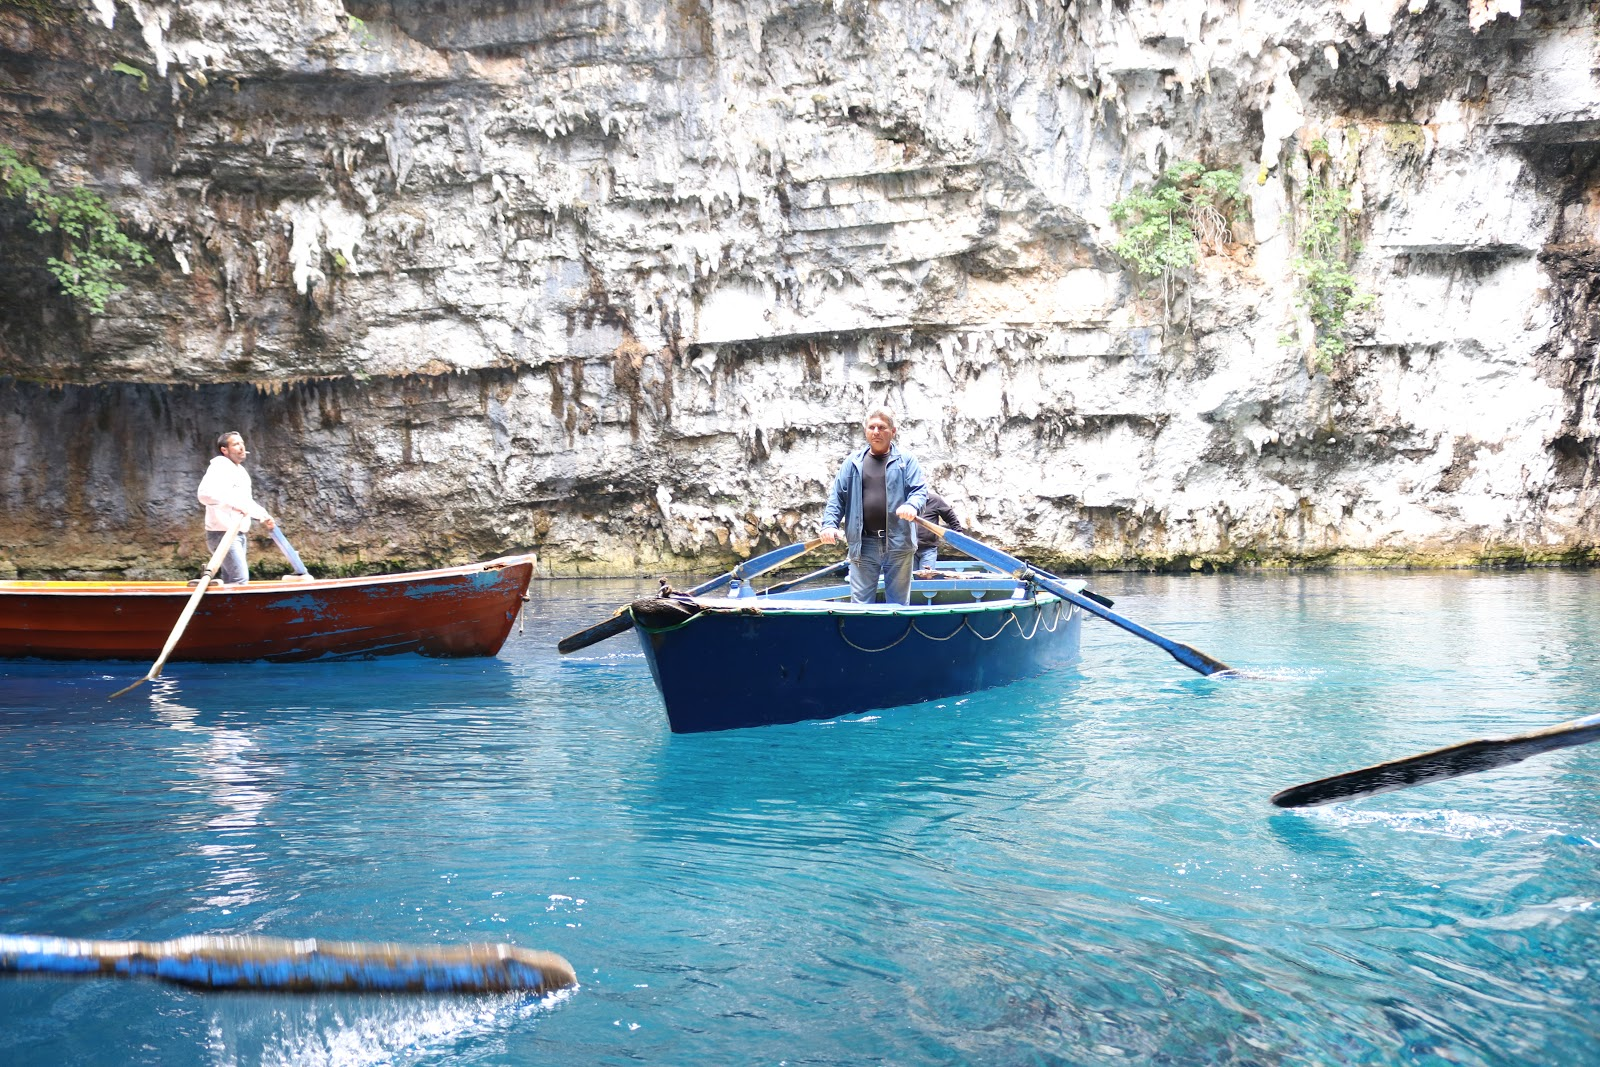 Boats in the Melissani Cave, Kefalonia